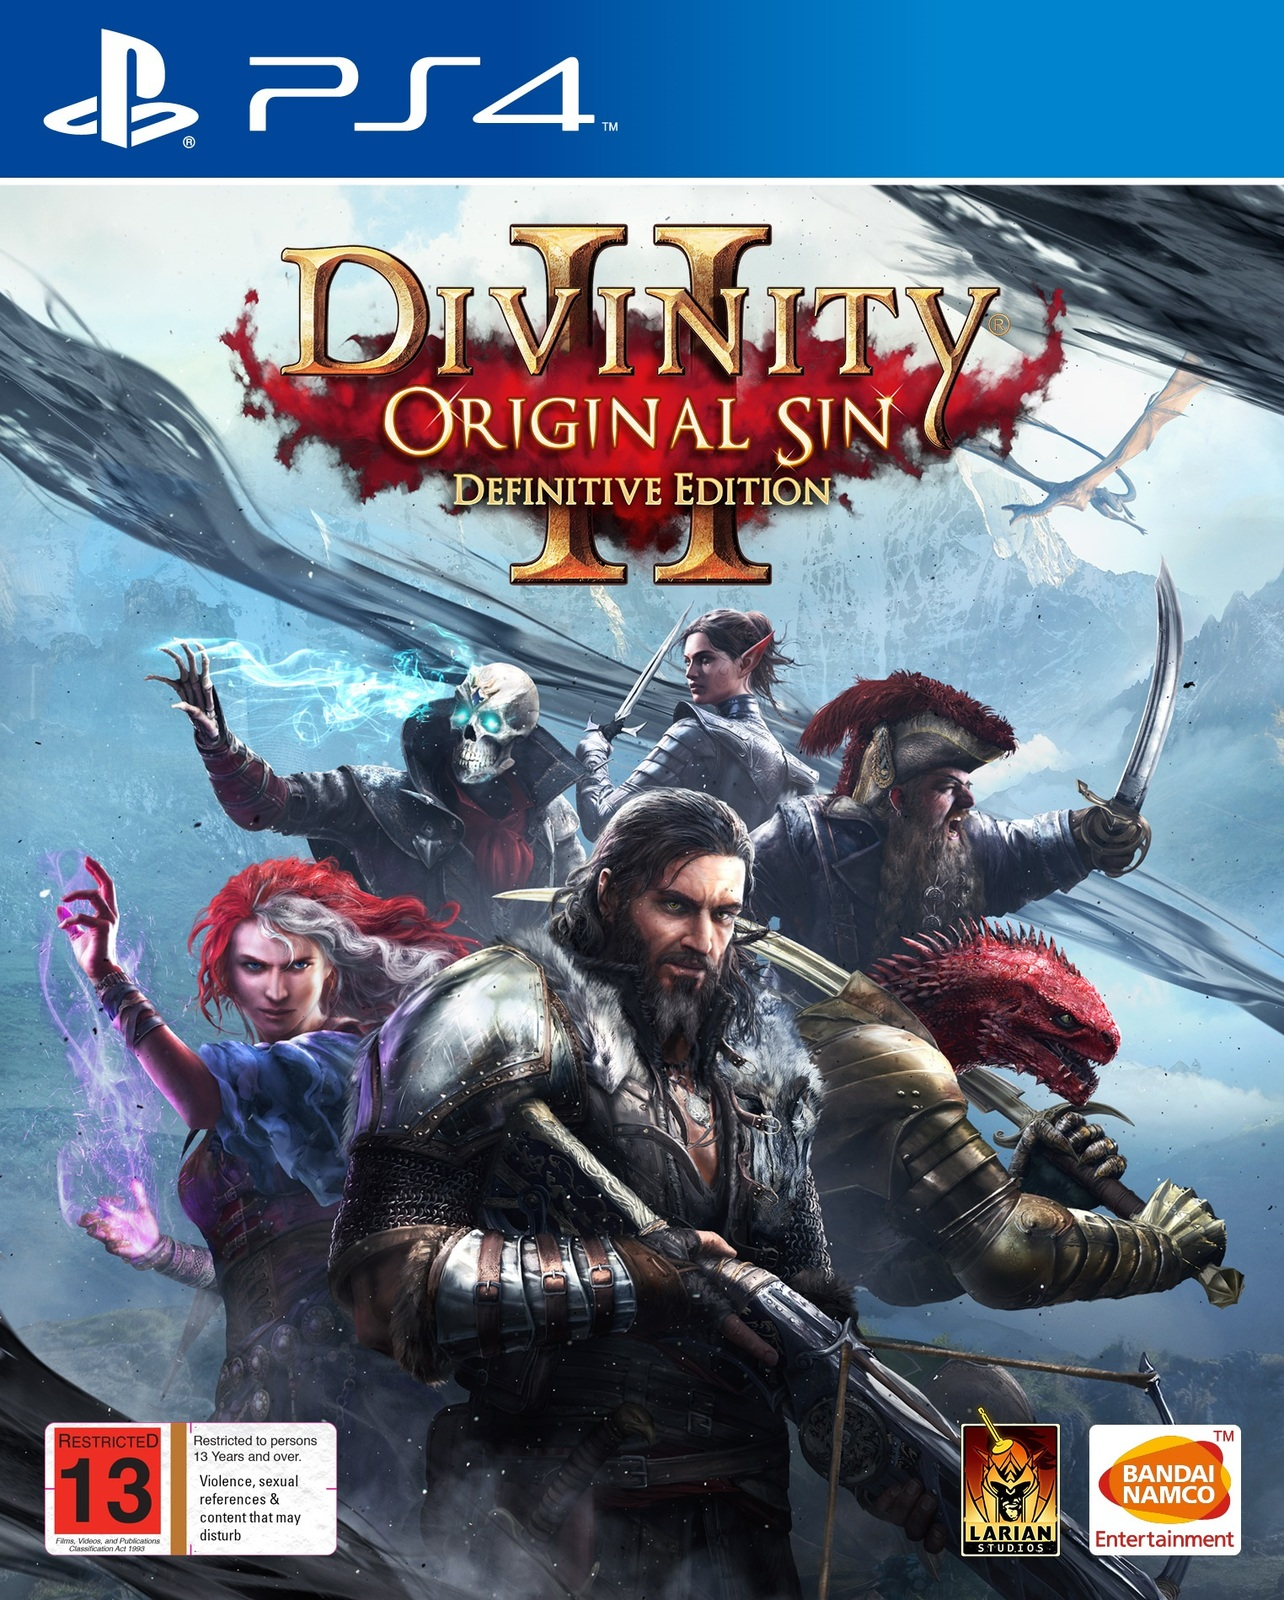 Divinity: Original Sin 2 Definitive Edition for PS4 image